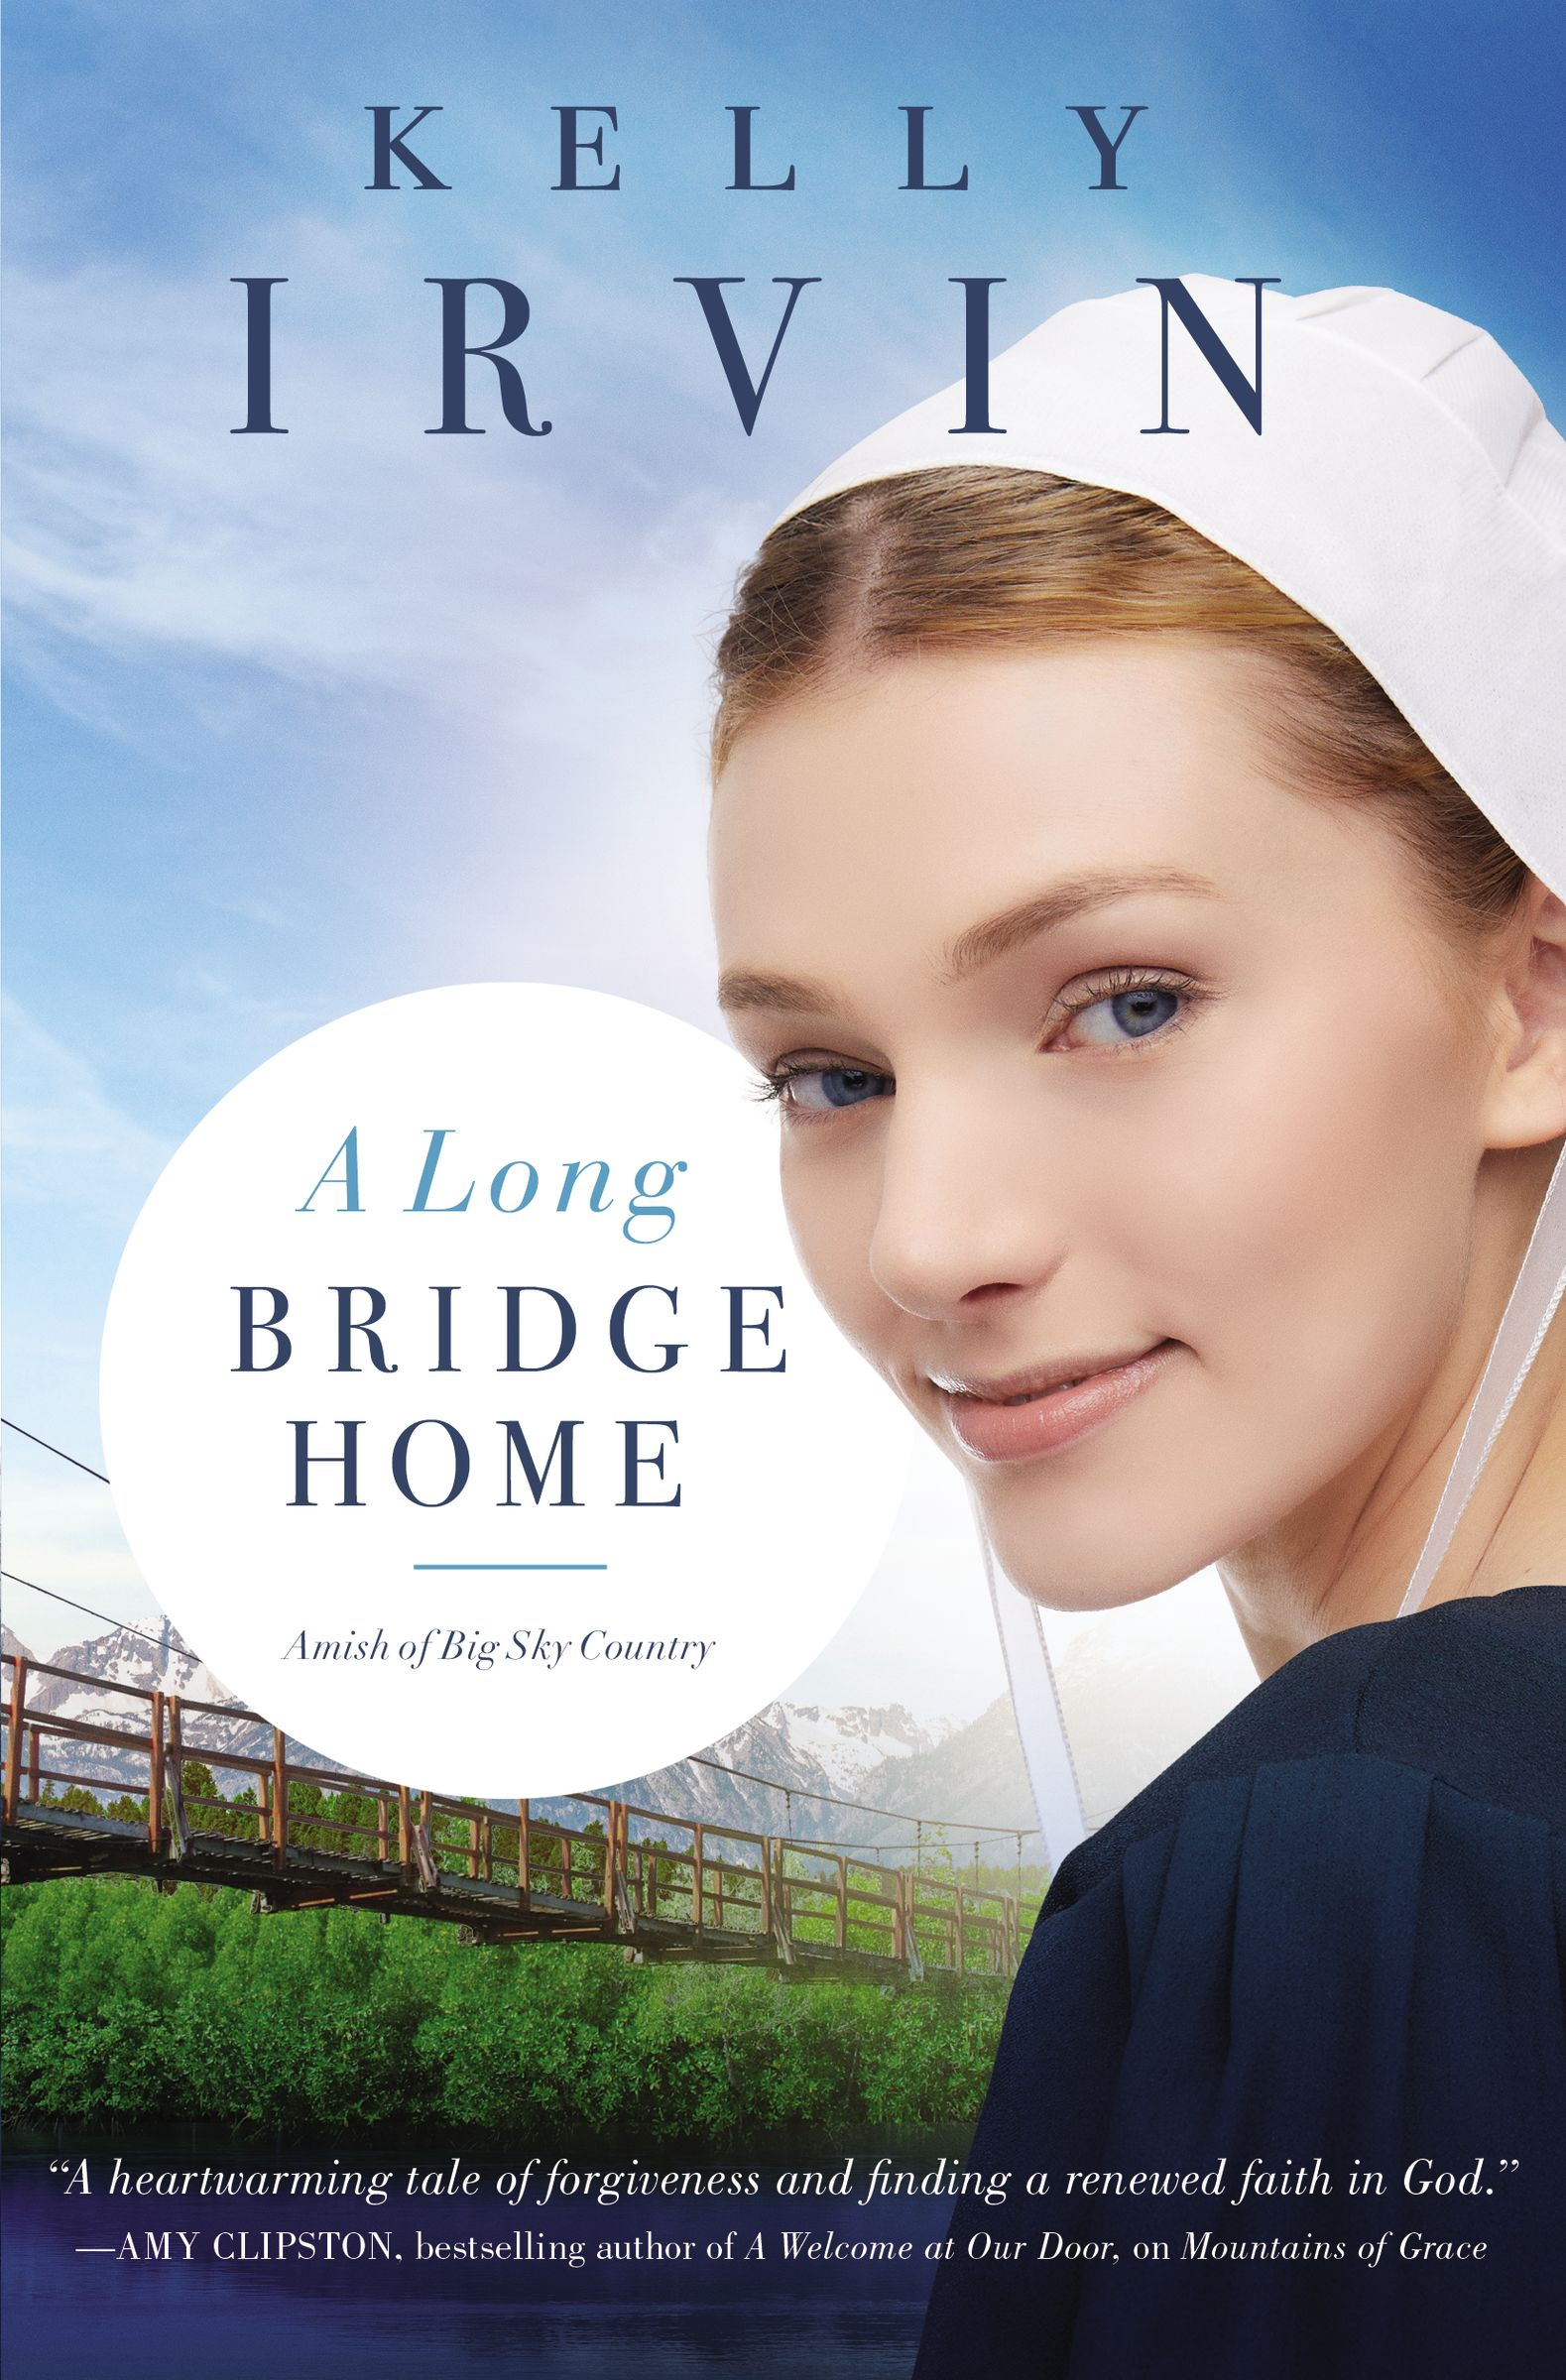 A Long Bridge Home - Kelly Irvin